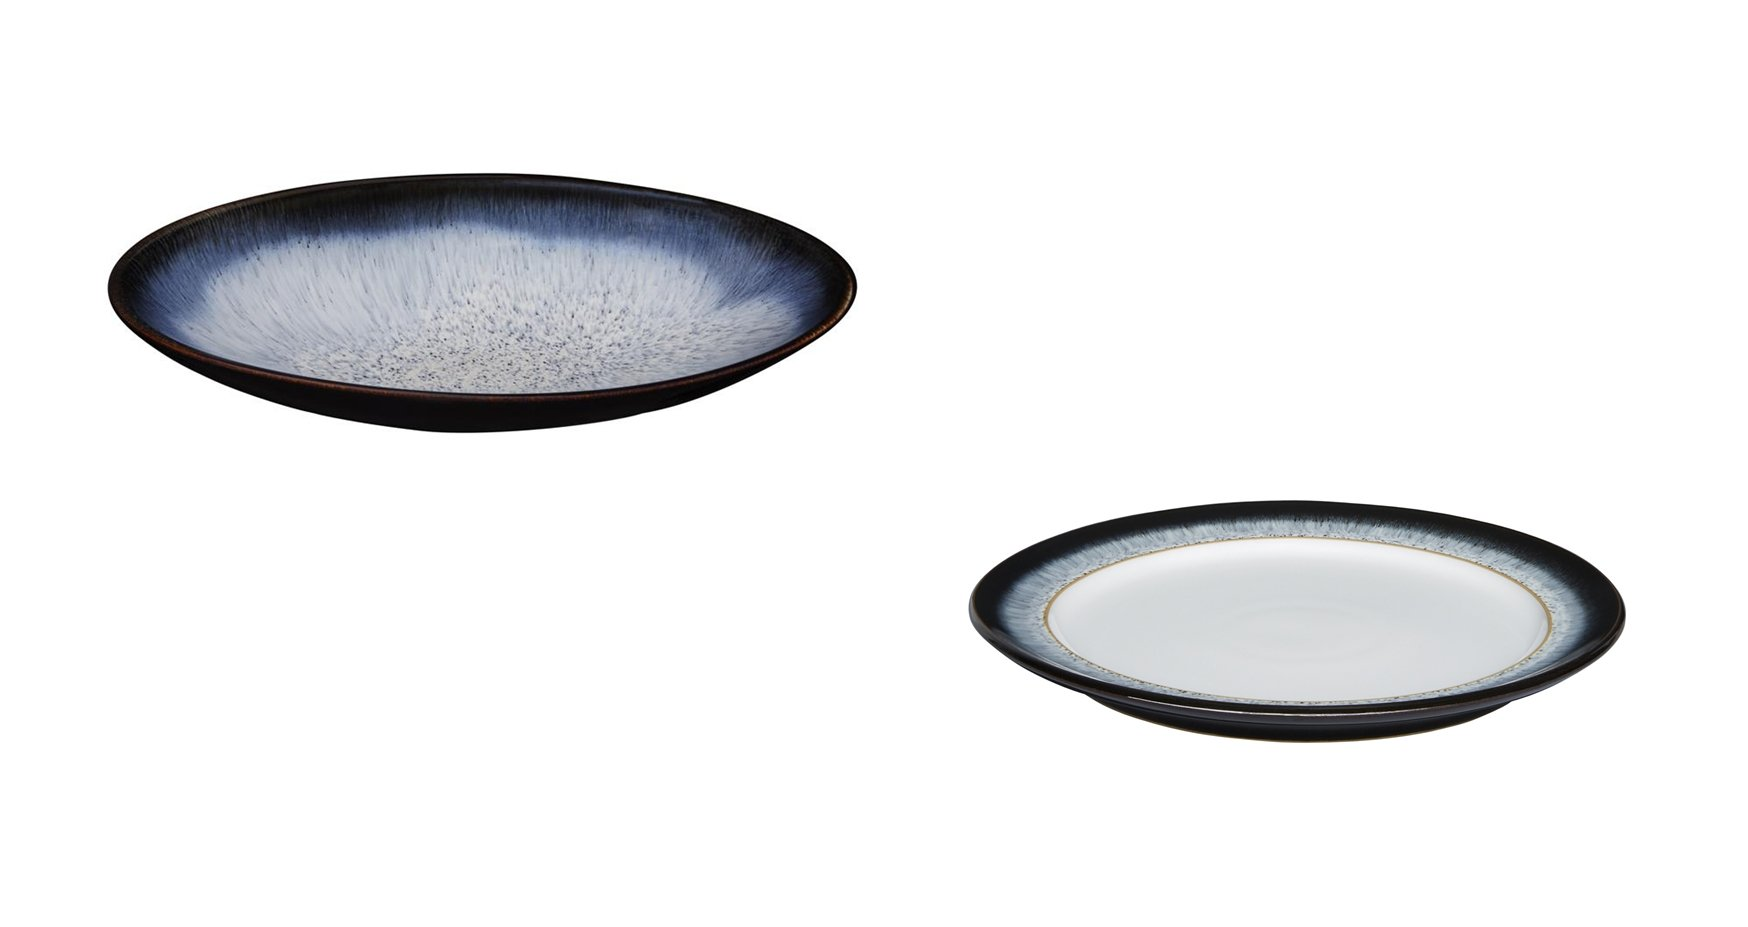 Denby Halo Large Oval Serving Dish and Wide Rimmed Dinner Plate, Set of 2